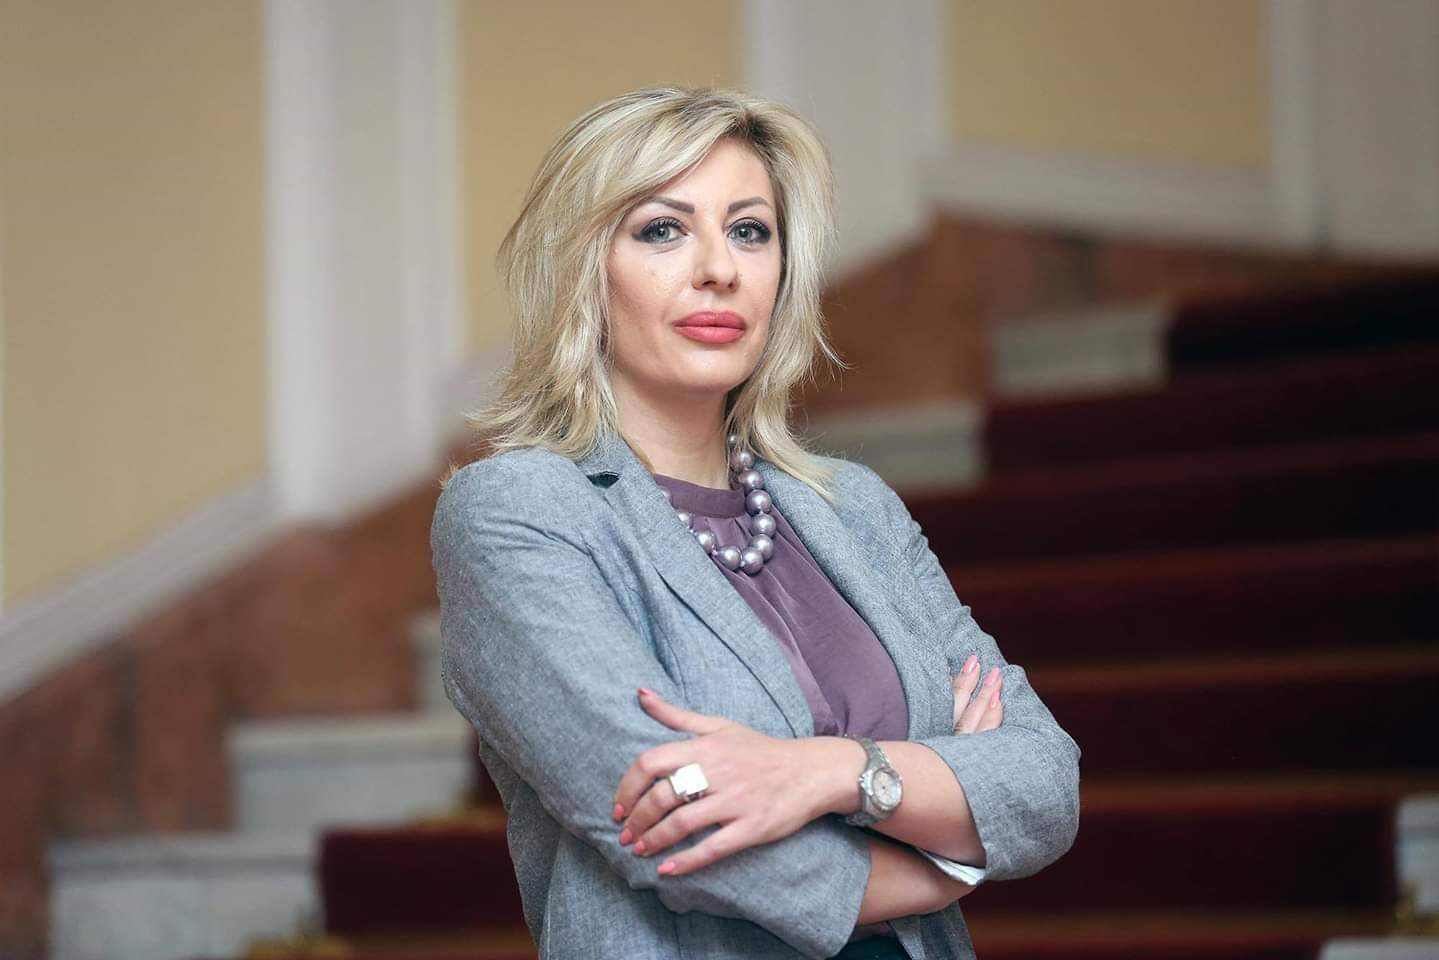 J. Joksimović: Important talks and messages at the right moment